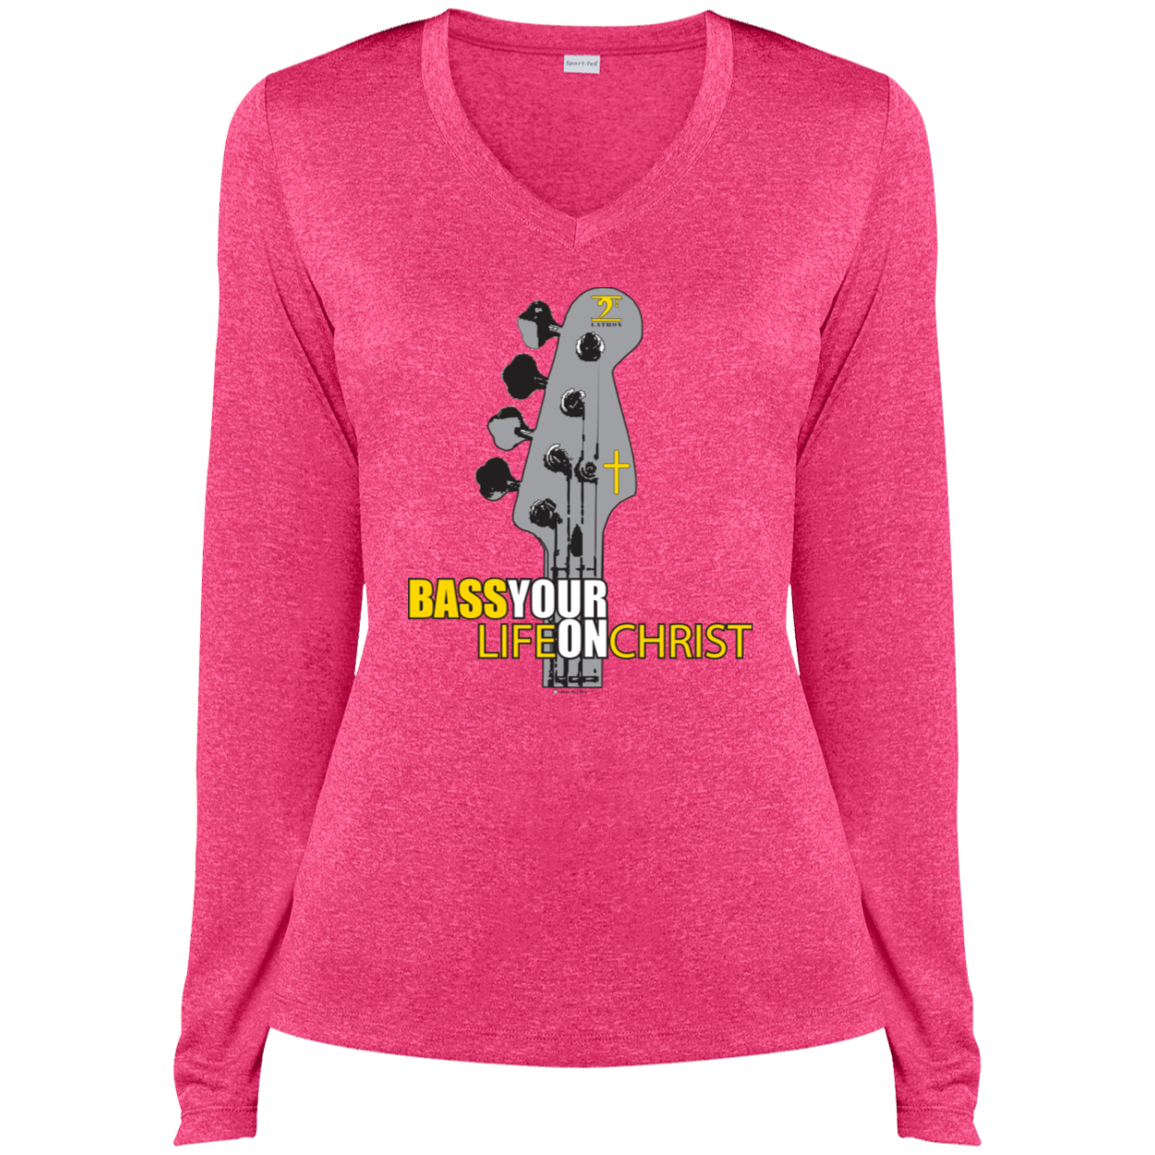 BASS YOUR LIFE ON CHRIST Ladies' LS Heather Dri-Fit V-Neck T-Shirt - Lathon Bass Wear